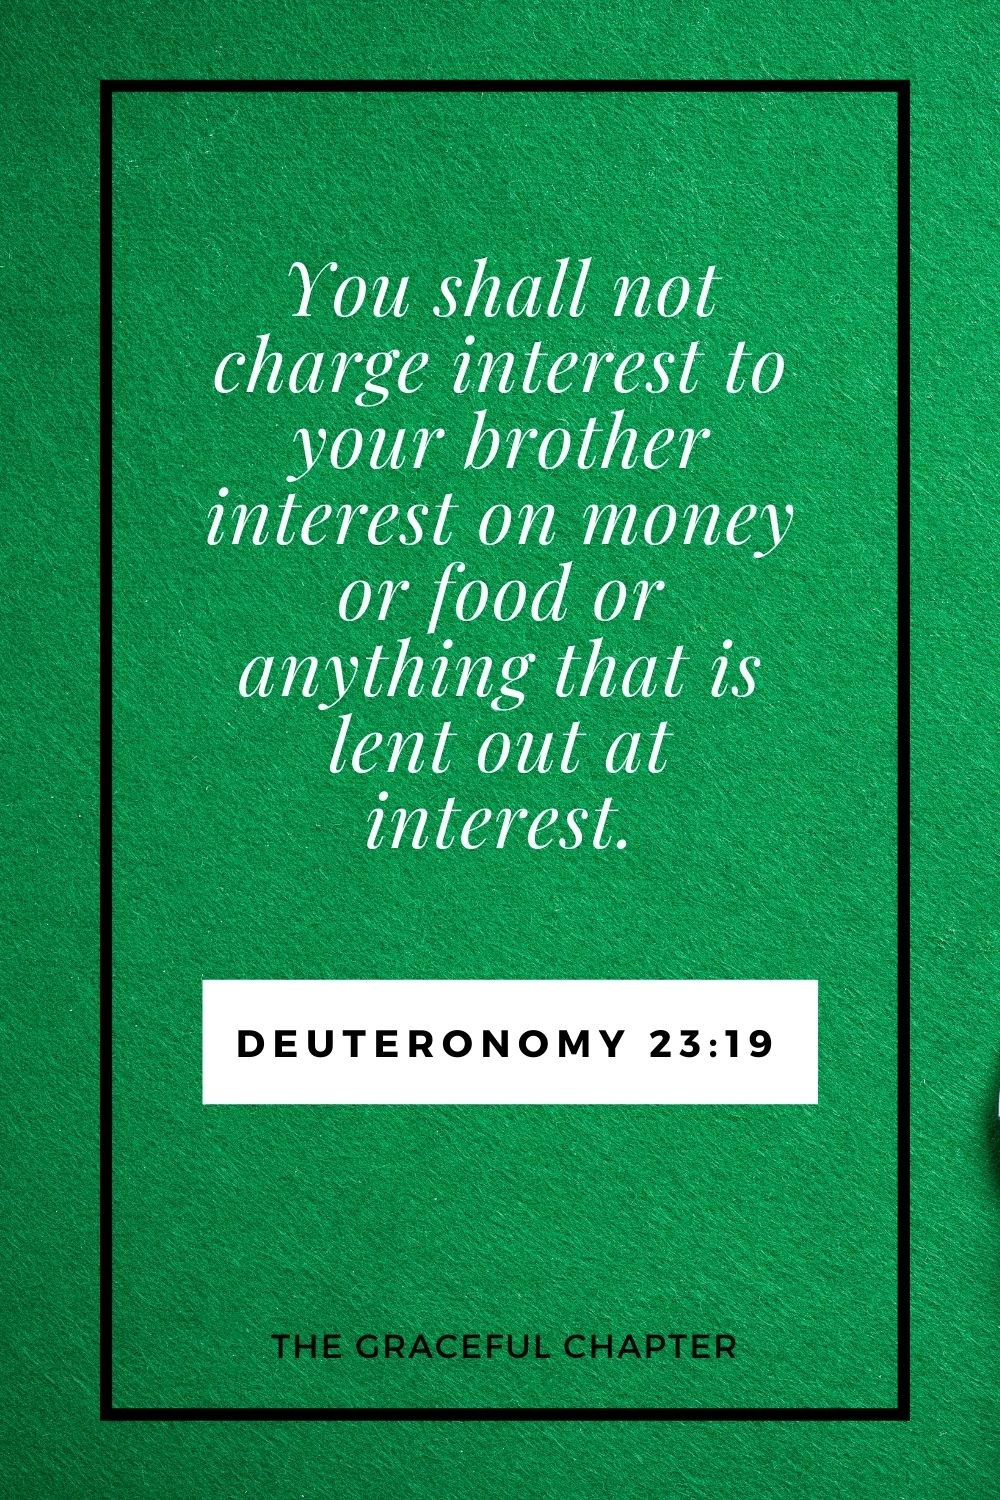 You shall not charge interest to your brother interest on money or food or anything that is lent out at interest. Deuteronomy 23:19